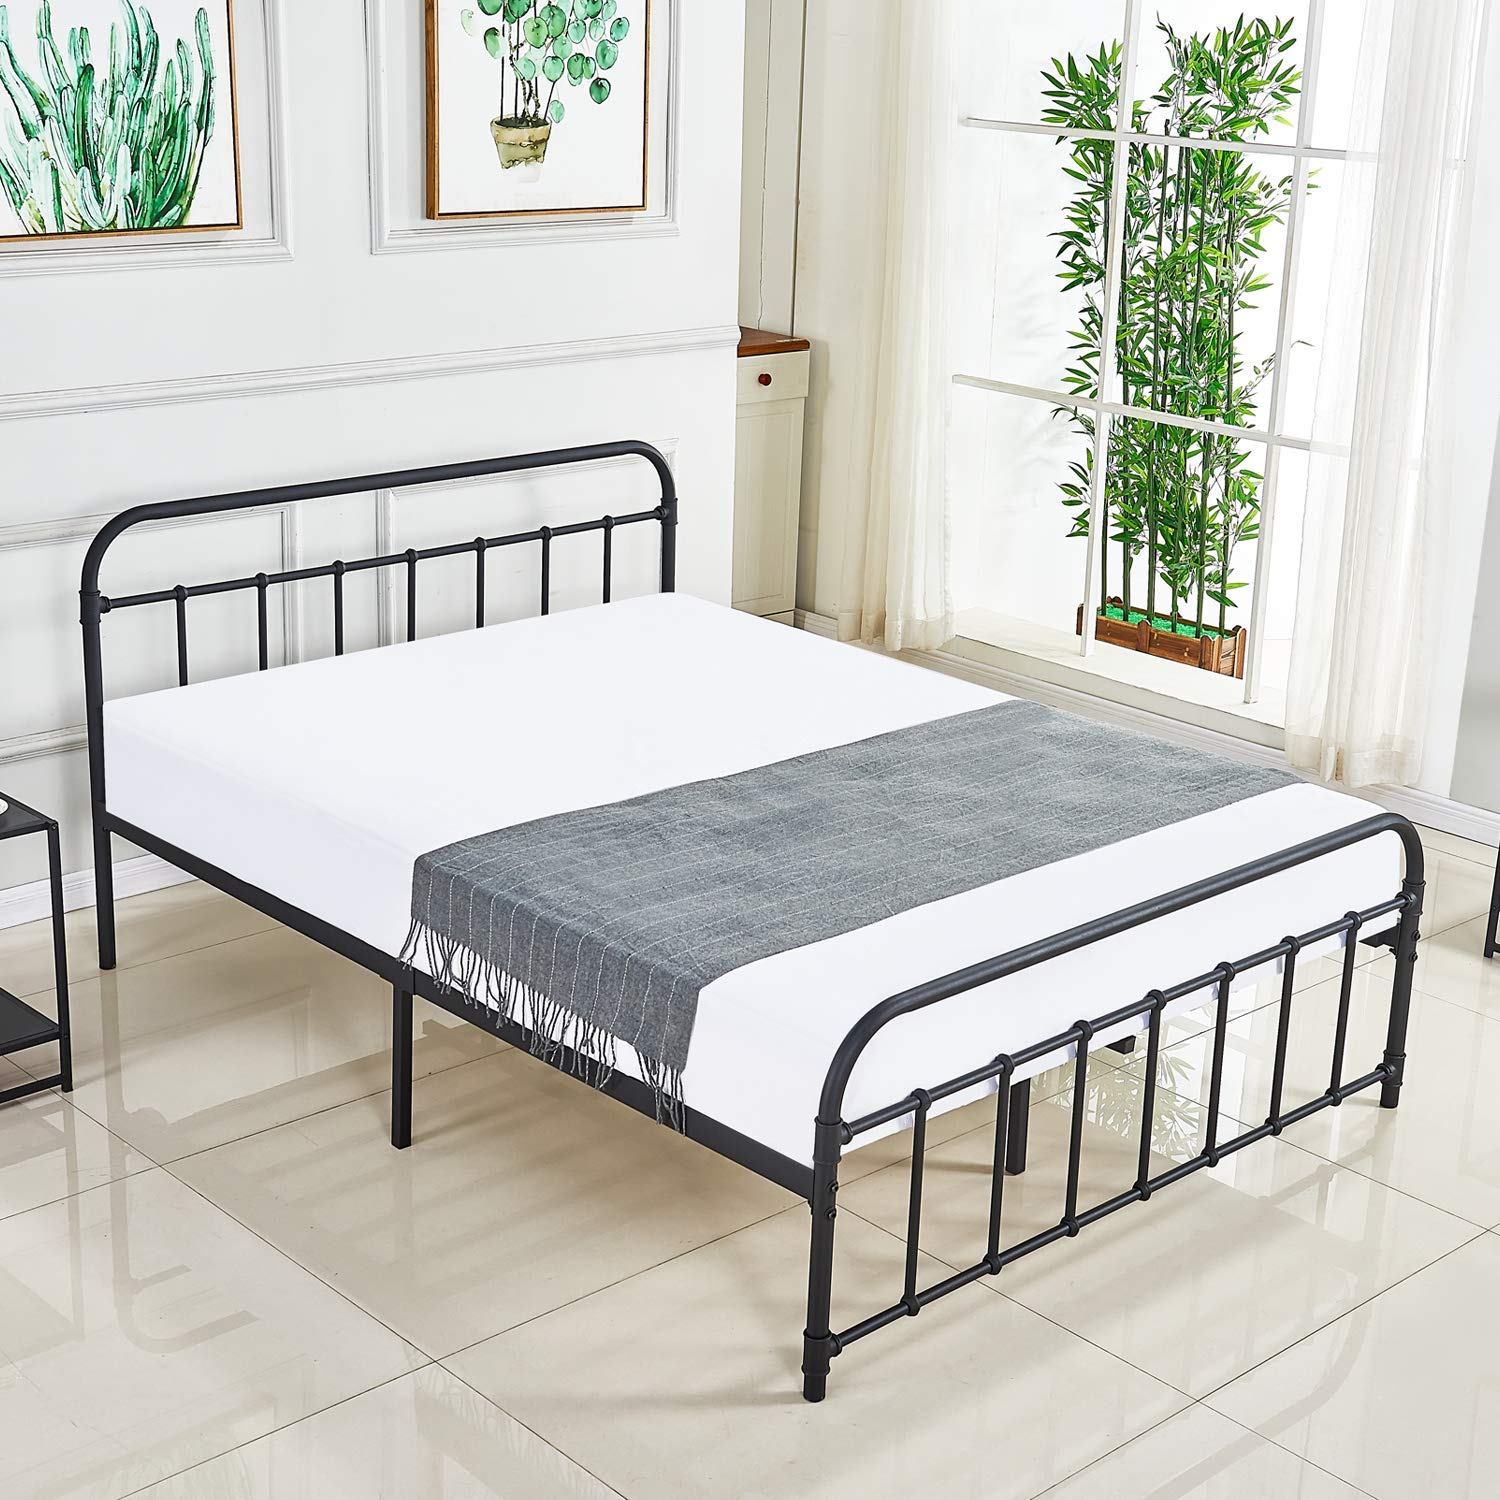 DIKAPA Queen Size Bed Frame, Reinforced Metal Platform Vintage Style Design Heavy Steel Support Mattress Foundation Box Spring Replacement Headboard Footboard